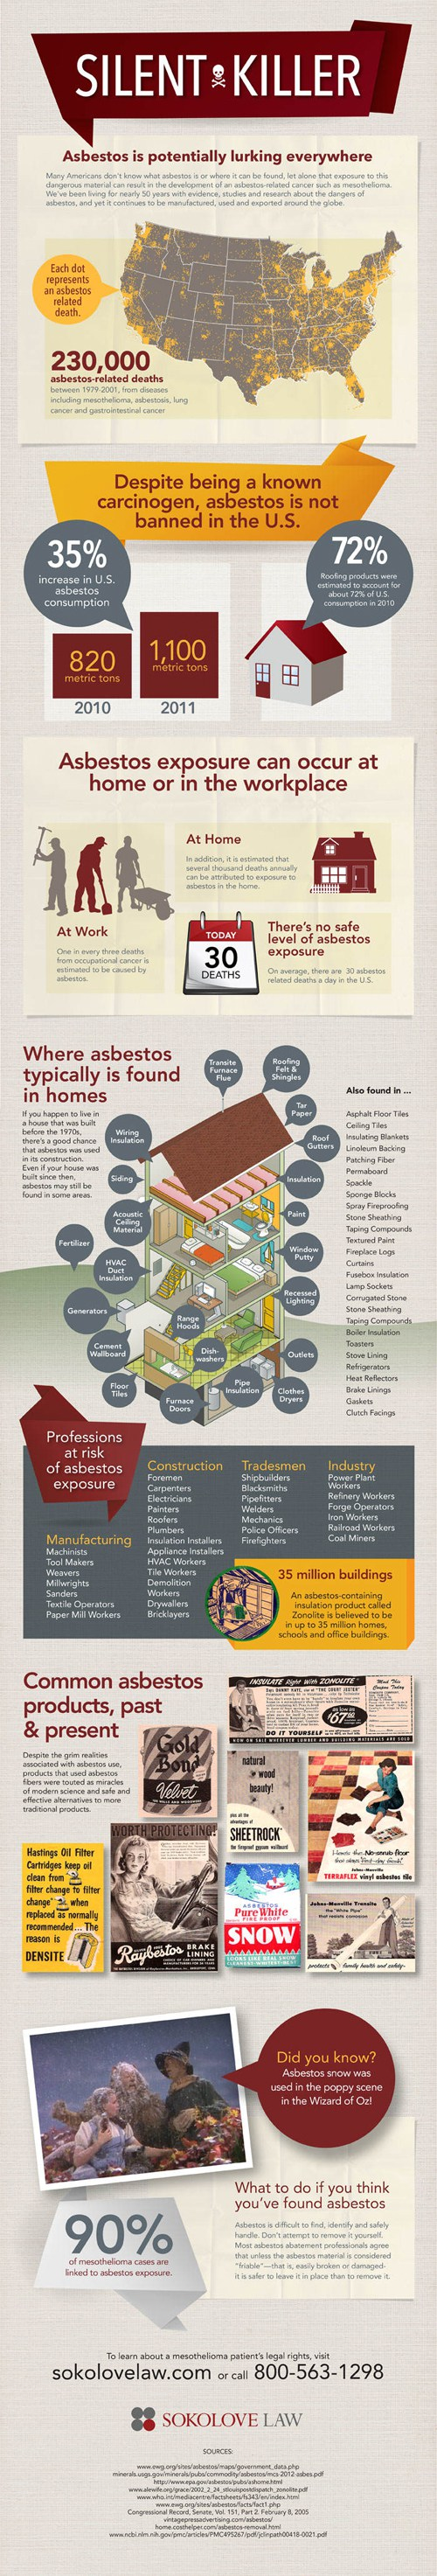 Asbestos Facts and Information Summary [Infographic]